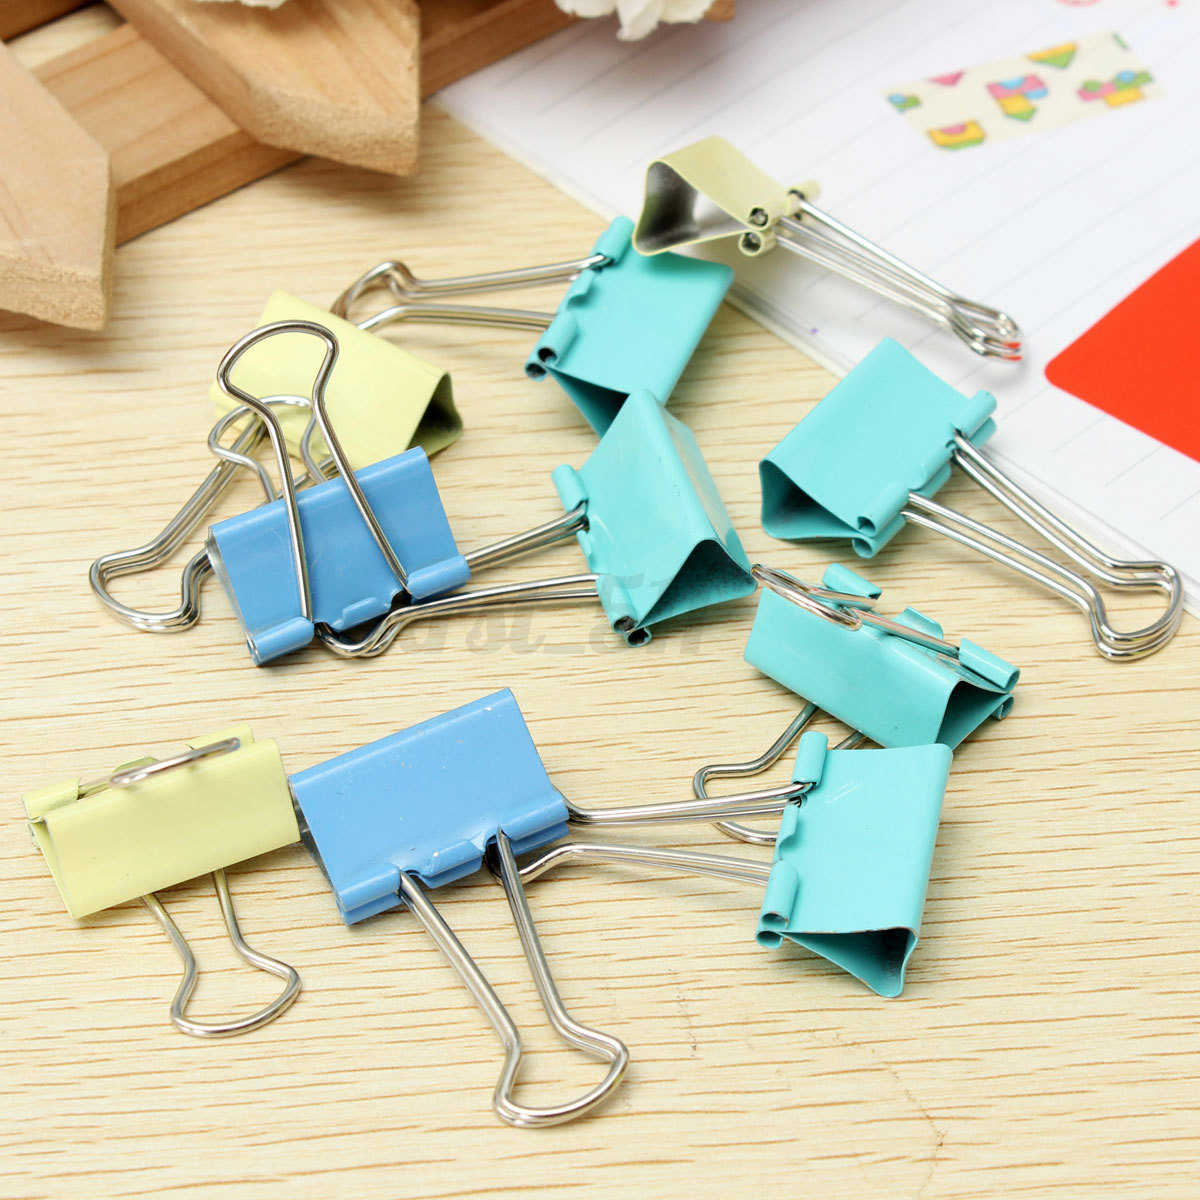 10pcs couleurs foldback clips replier attache pince pour facture papier bureau ebay. Black Bedroom Furniture Sets. Home Design Ideas